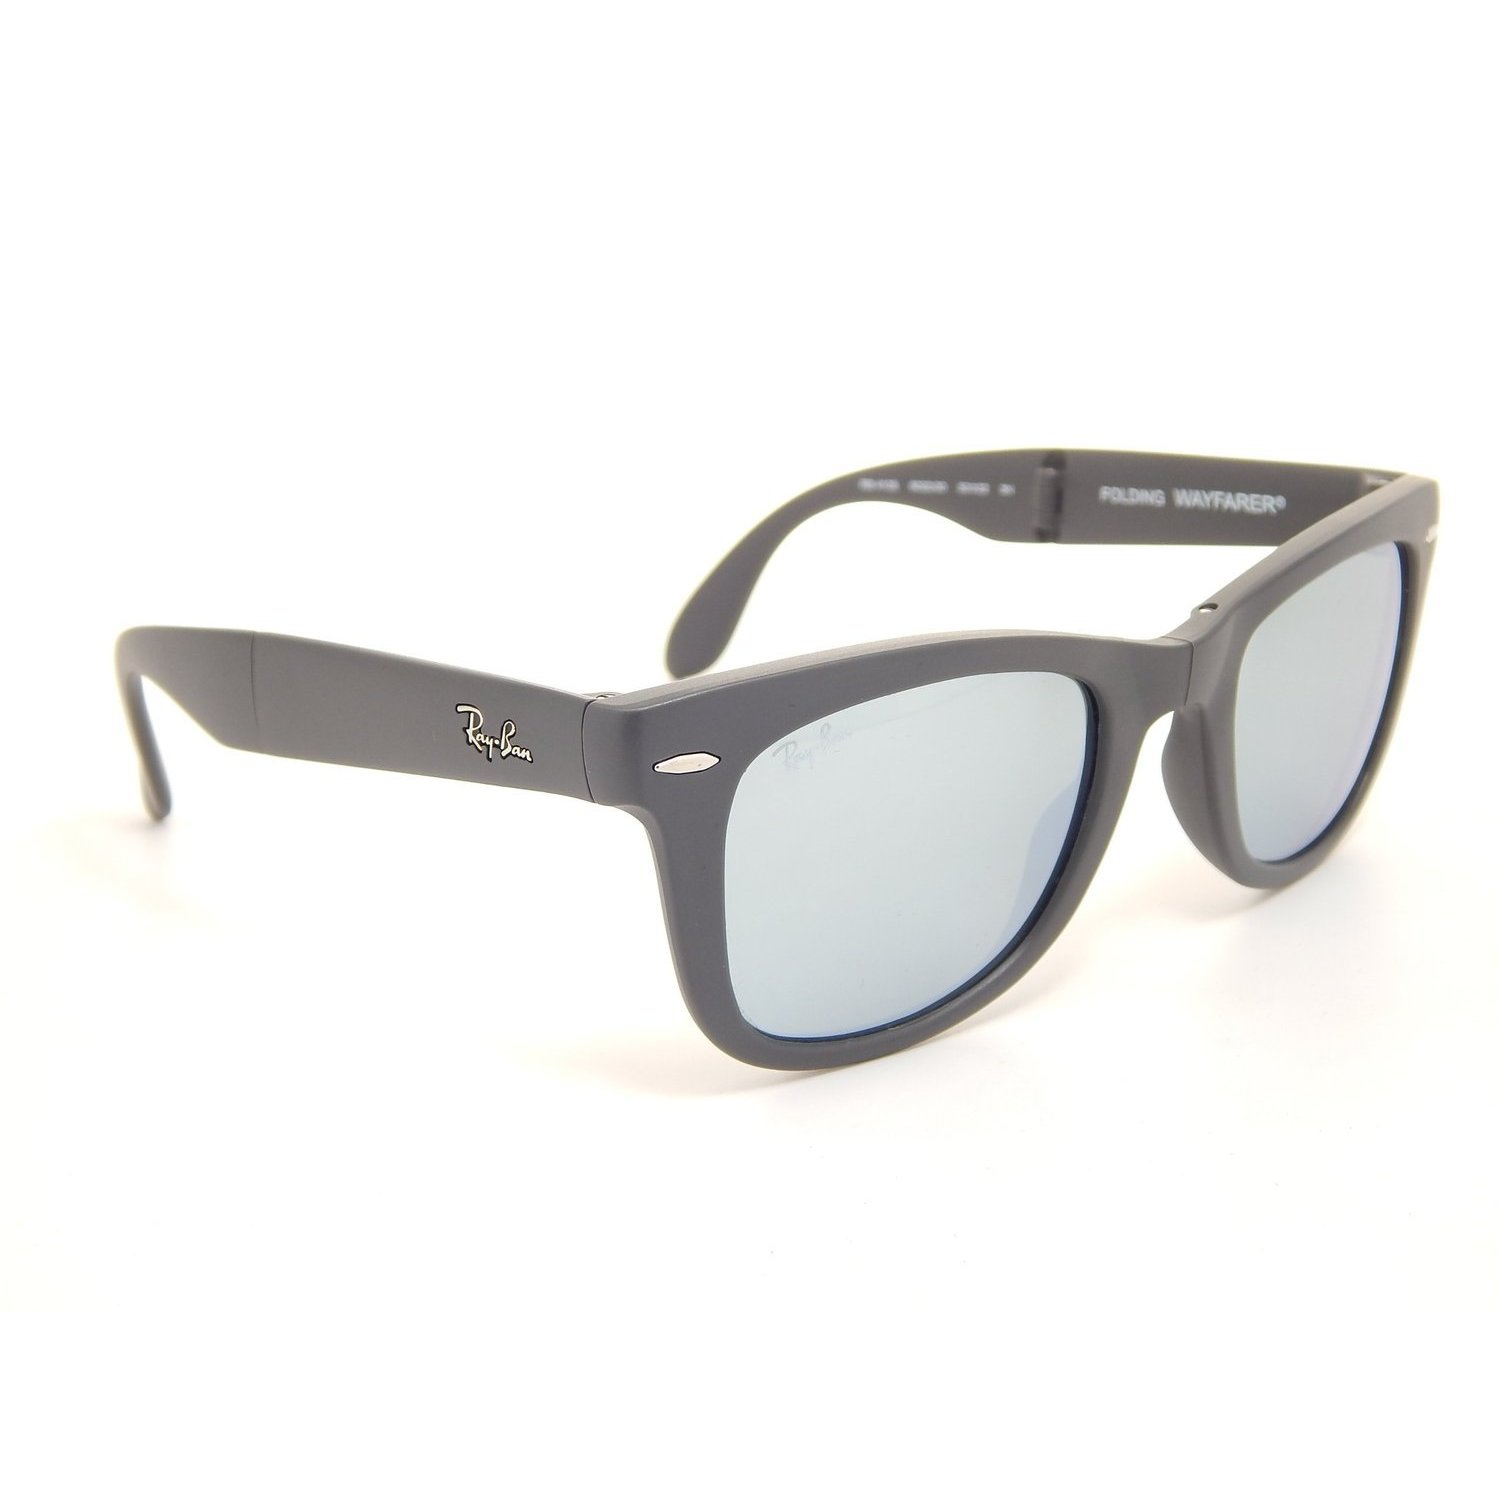 2420676557 Shop Ray-Ban Folding RB4105 Matte Black Grey Mirrored Wayfarer Sunglasses -  Free Shipping Today - Overstock - 10314347